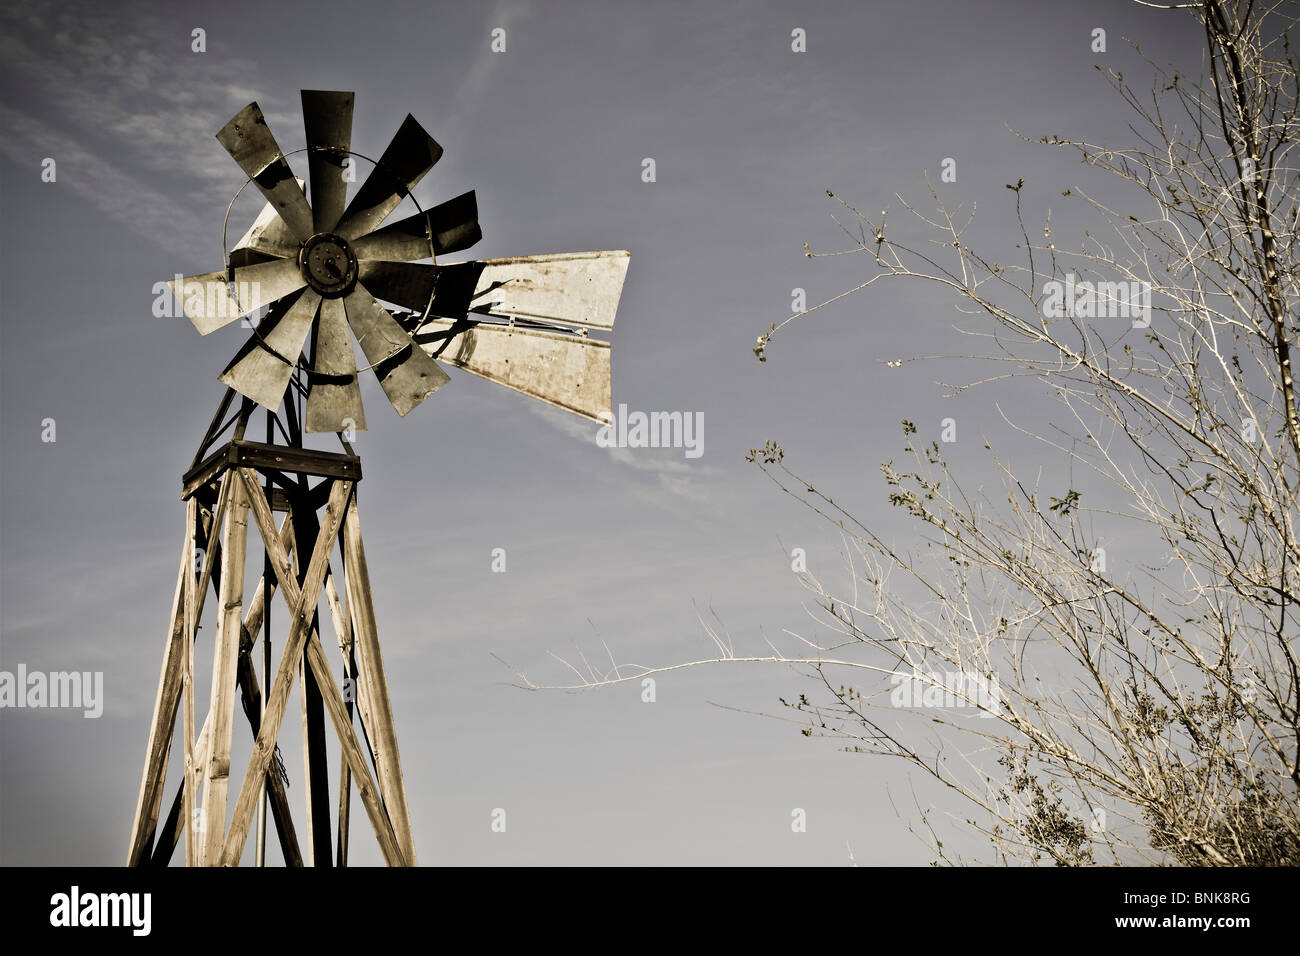 An old frontier style windmill. Stock Photo